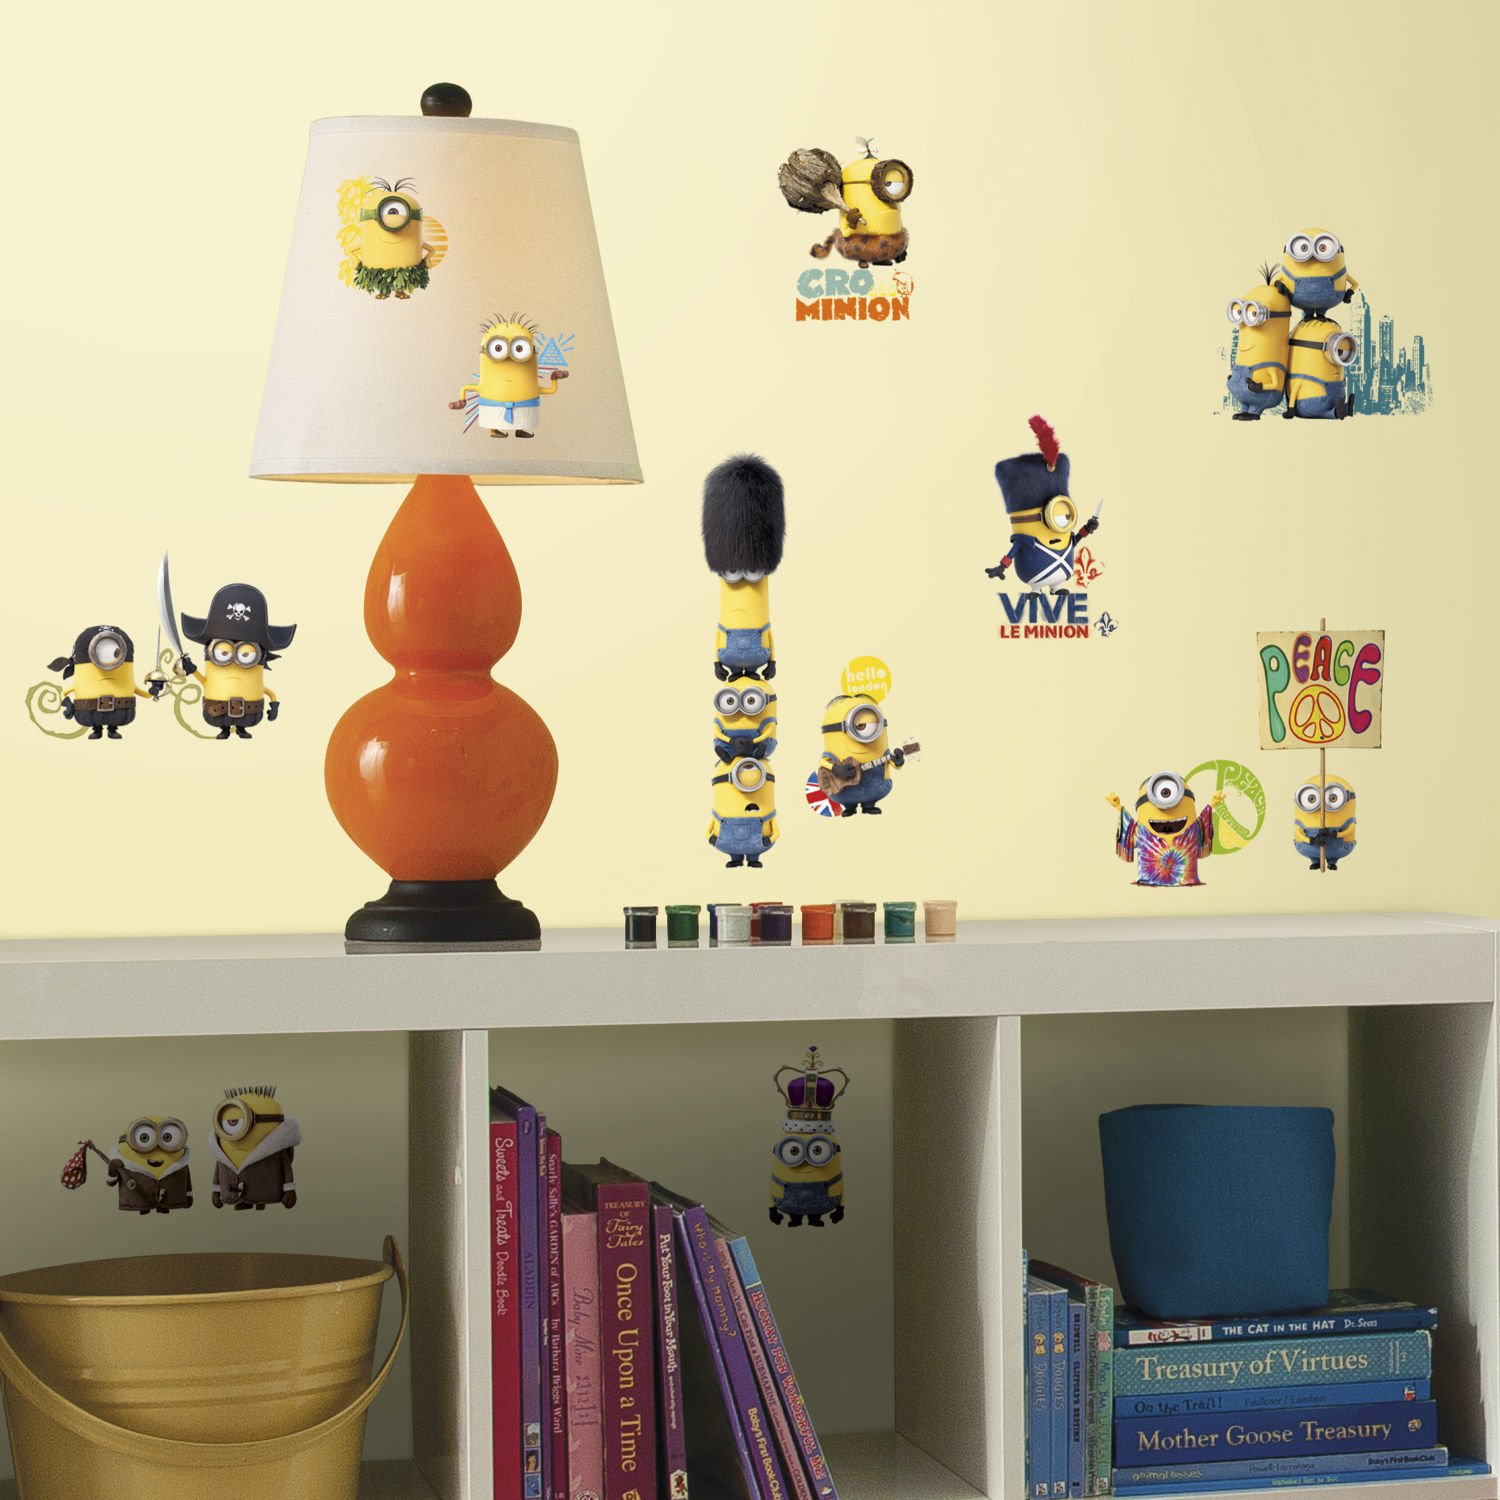 Minion Bedroom Wallpaper Amazoncom Minions Movie 16 Big Wall Decals Despicable Me Room